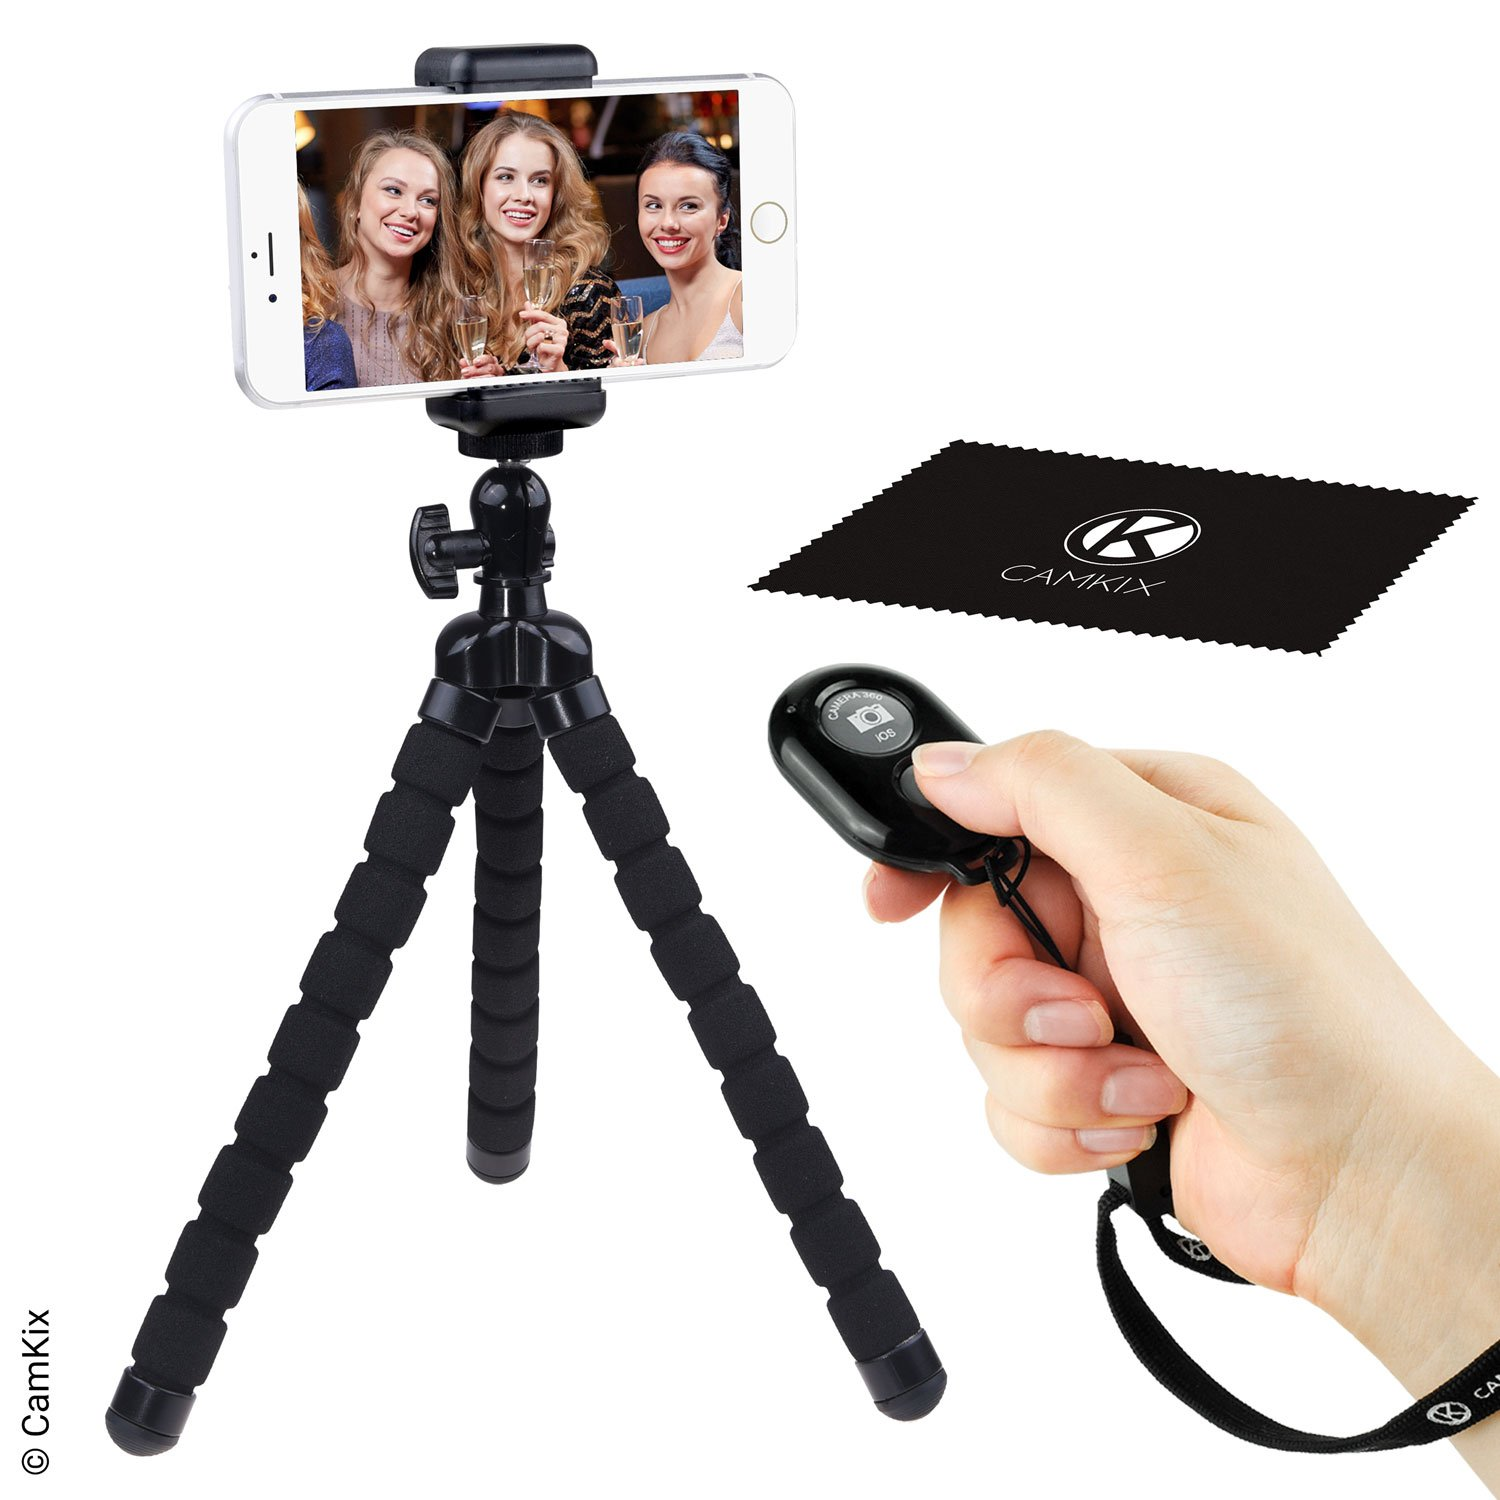 Flexible Cell Phone Tripod and Wireless Remote Control Camera Shutter - for iPhone, Samsung Galaxy and many more - Octopus Style Mount - Universal Phone Holder - Solution for Smartphone Photography